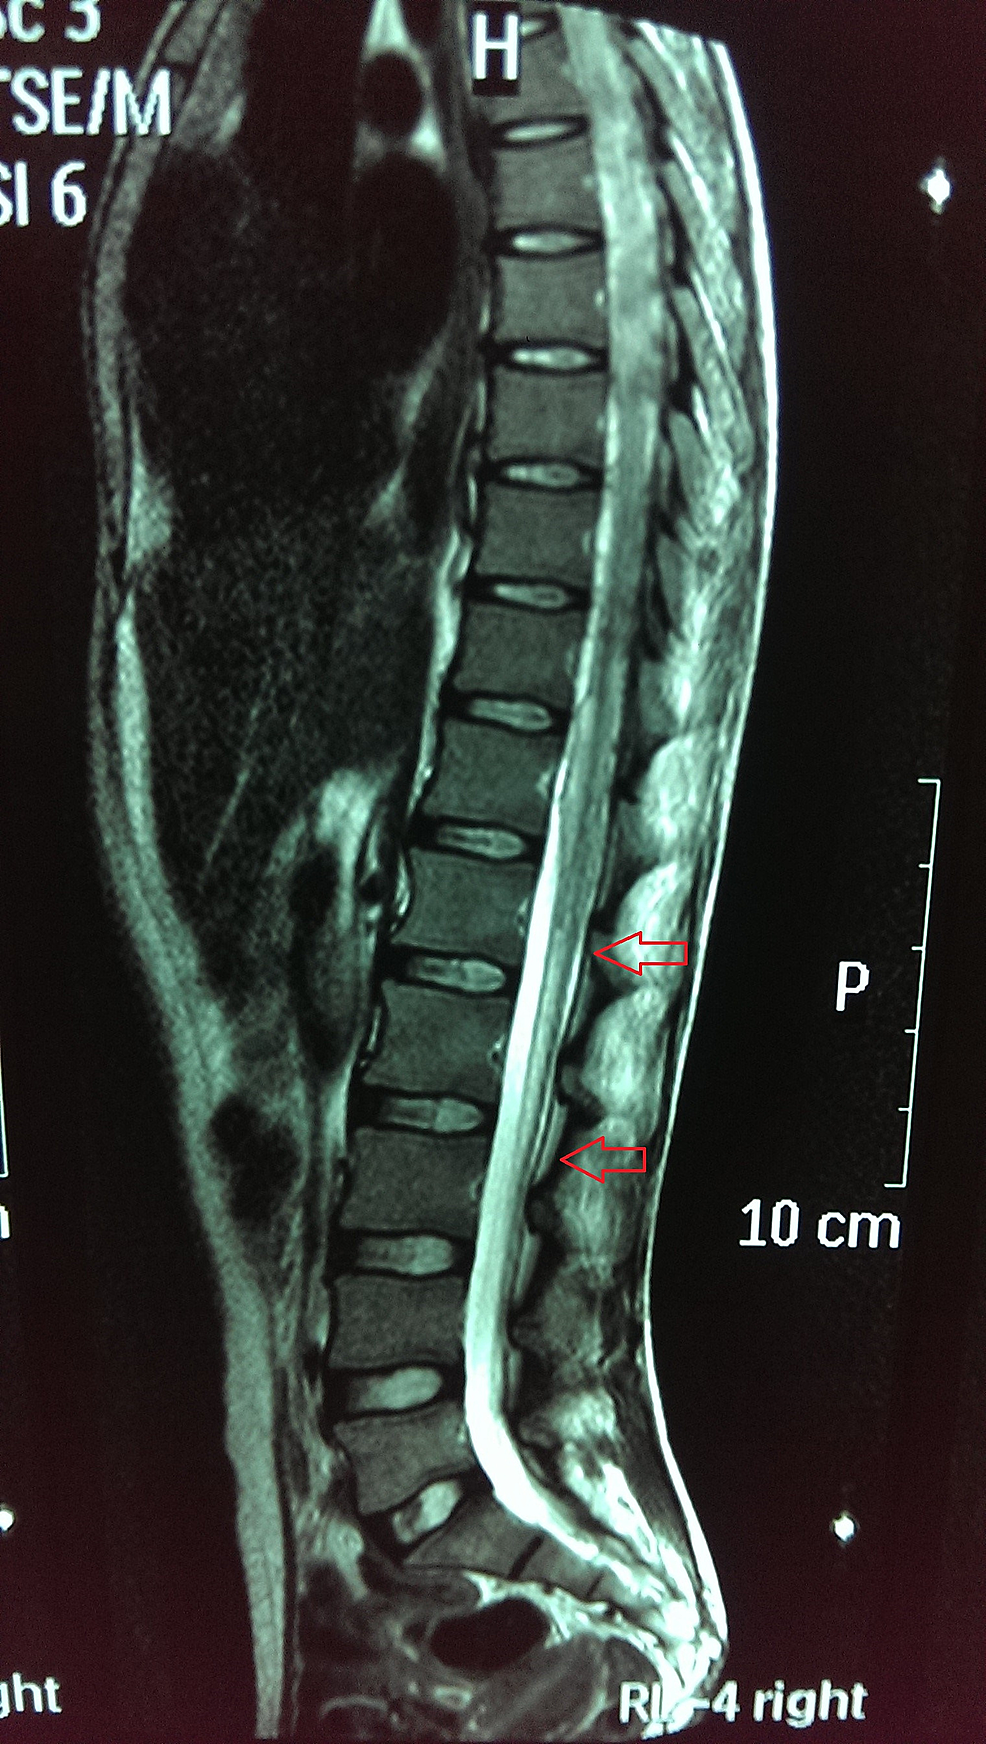 Dorsolumbar-magnetic-resonance-imaging-(MRI)-spine-with-contrast